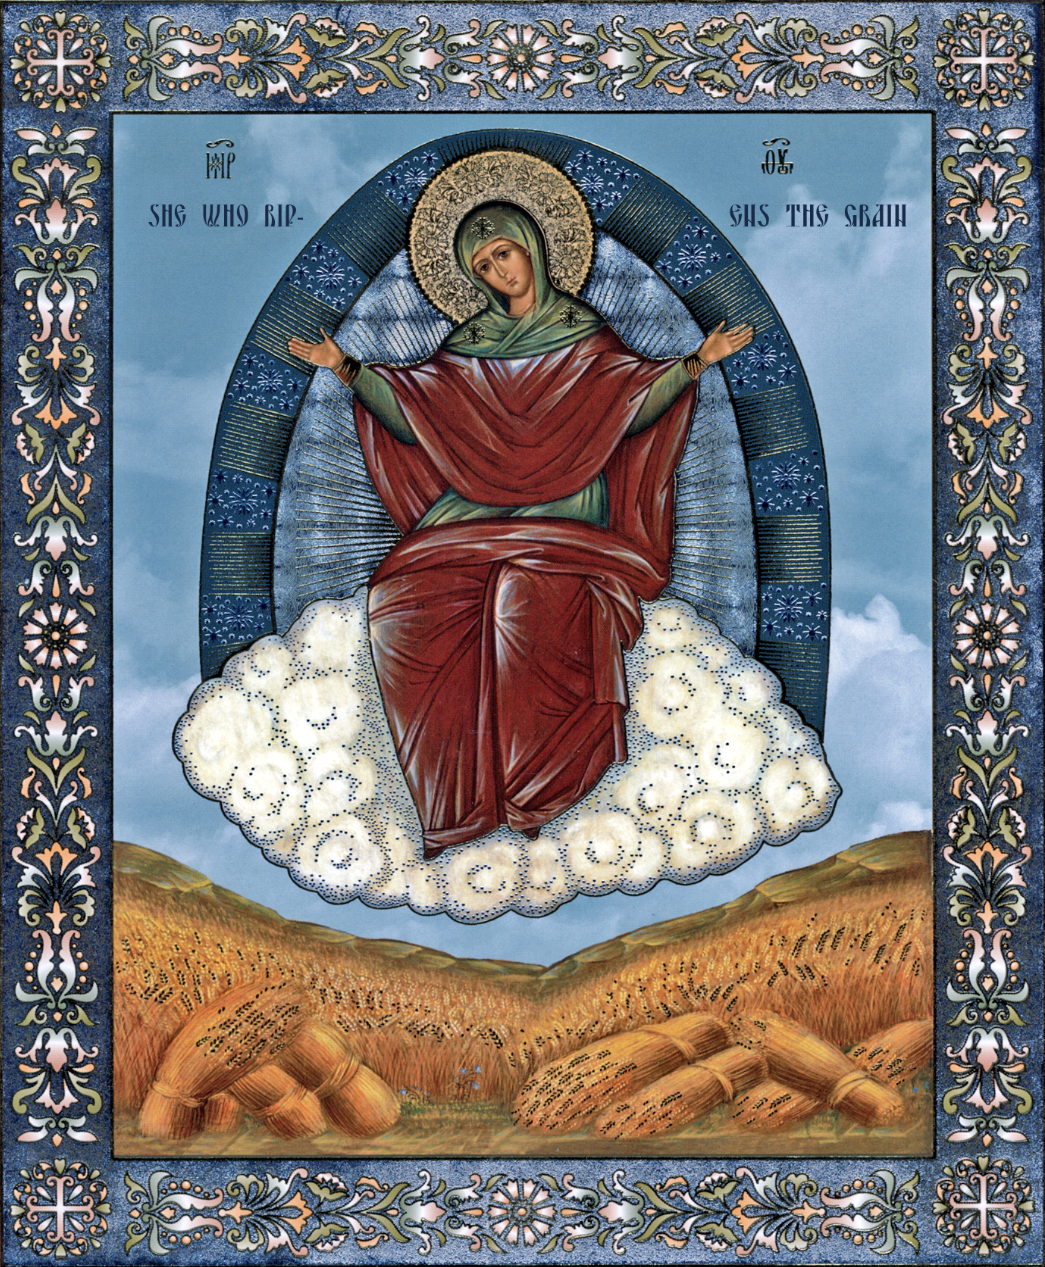 https://www.uncutmountainsupply.com/icons/of-the-theotokos/the-theotokos-she-who-ripens-the-grain-12g75/